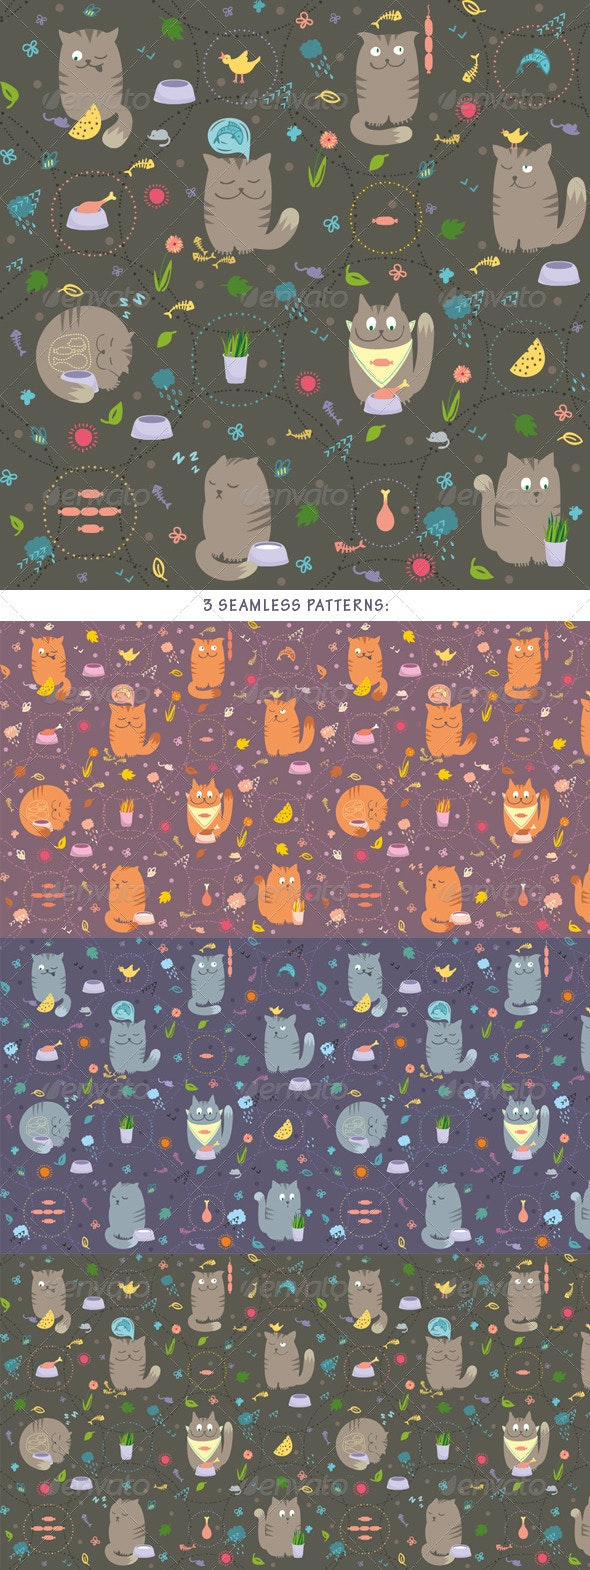 Seamless Pattern - Cats With Foods - Backgrounds Decorative